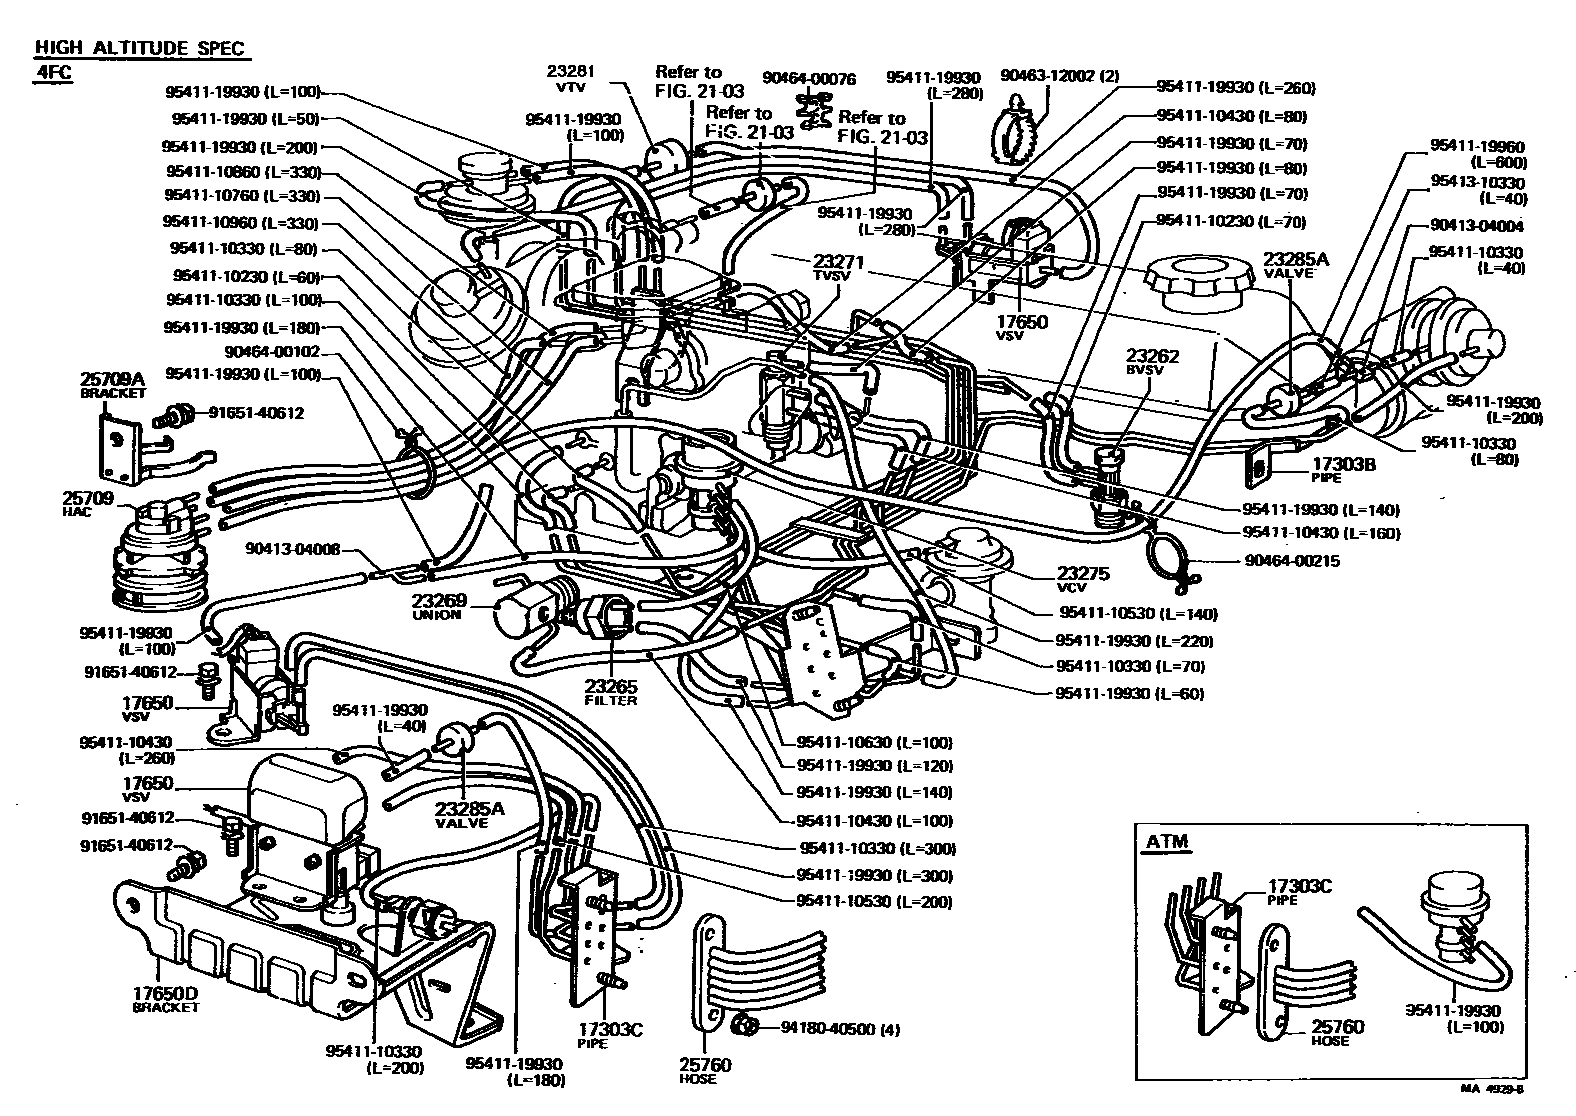 cruiser vacuum diagrams on electrical wiring diagram 2000 land